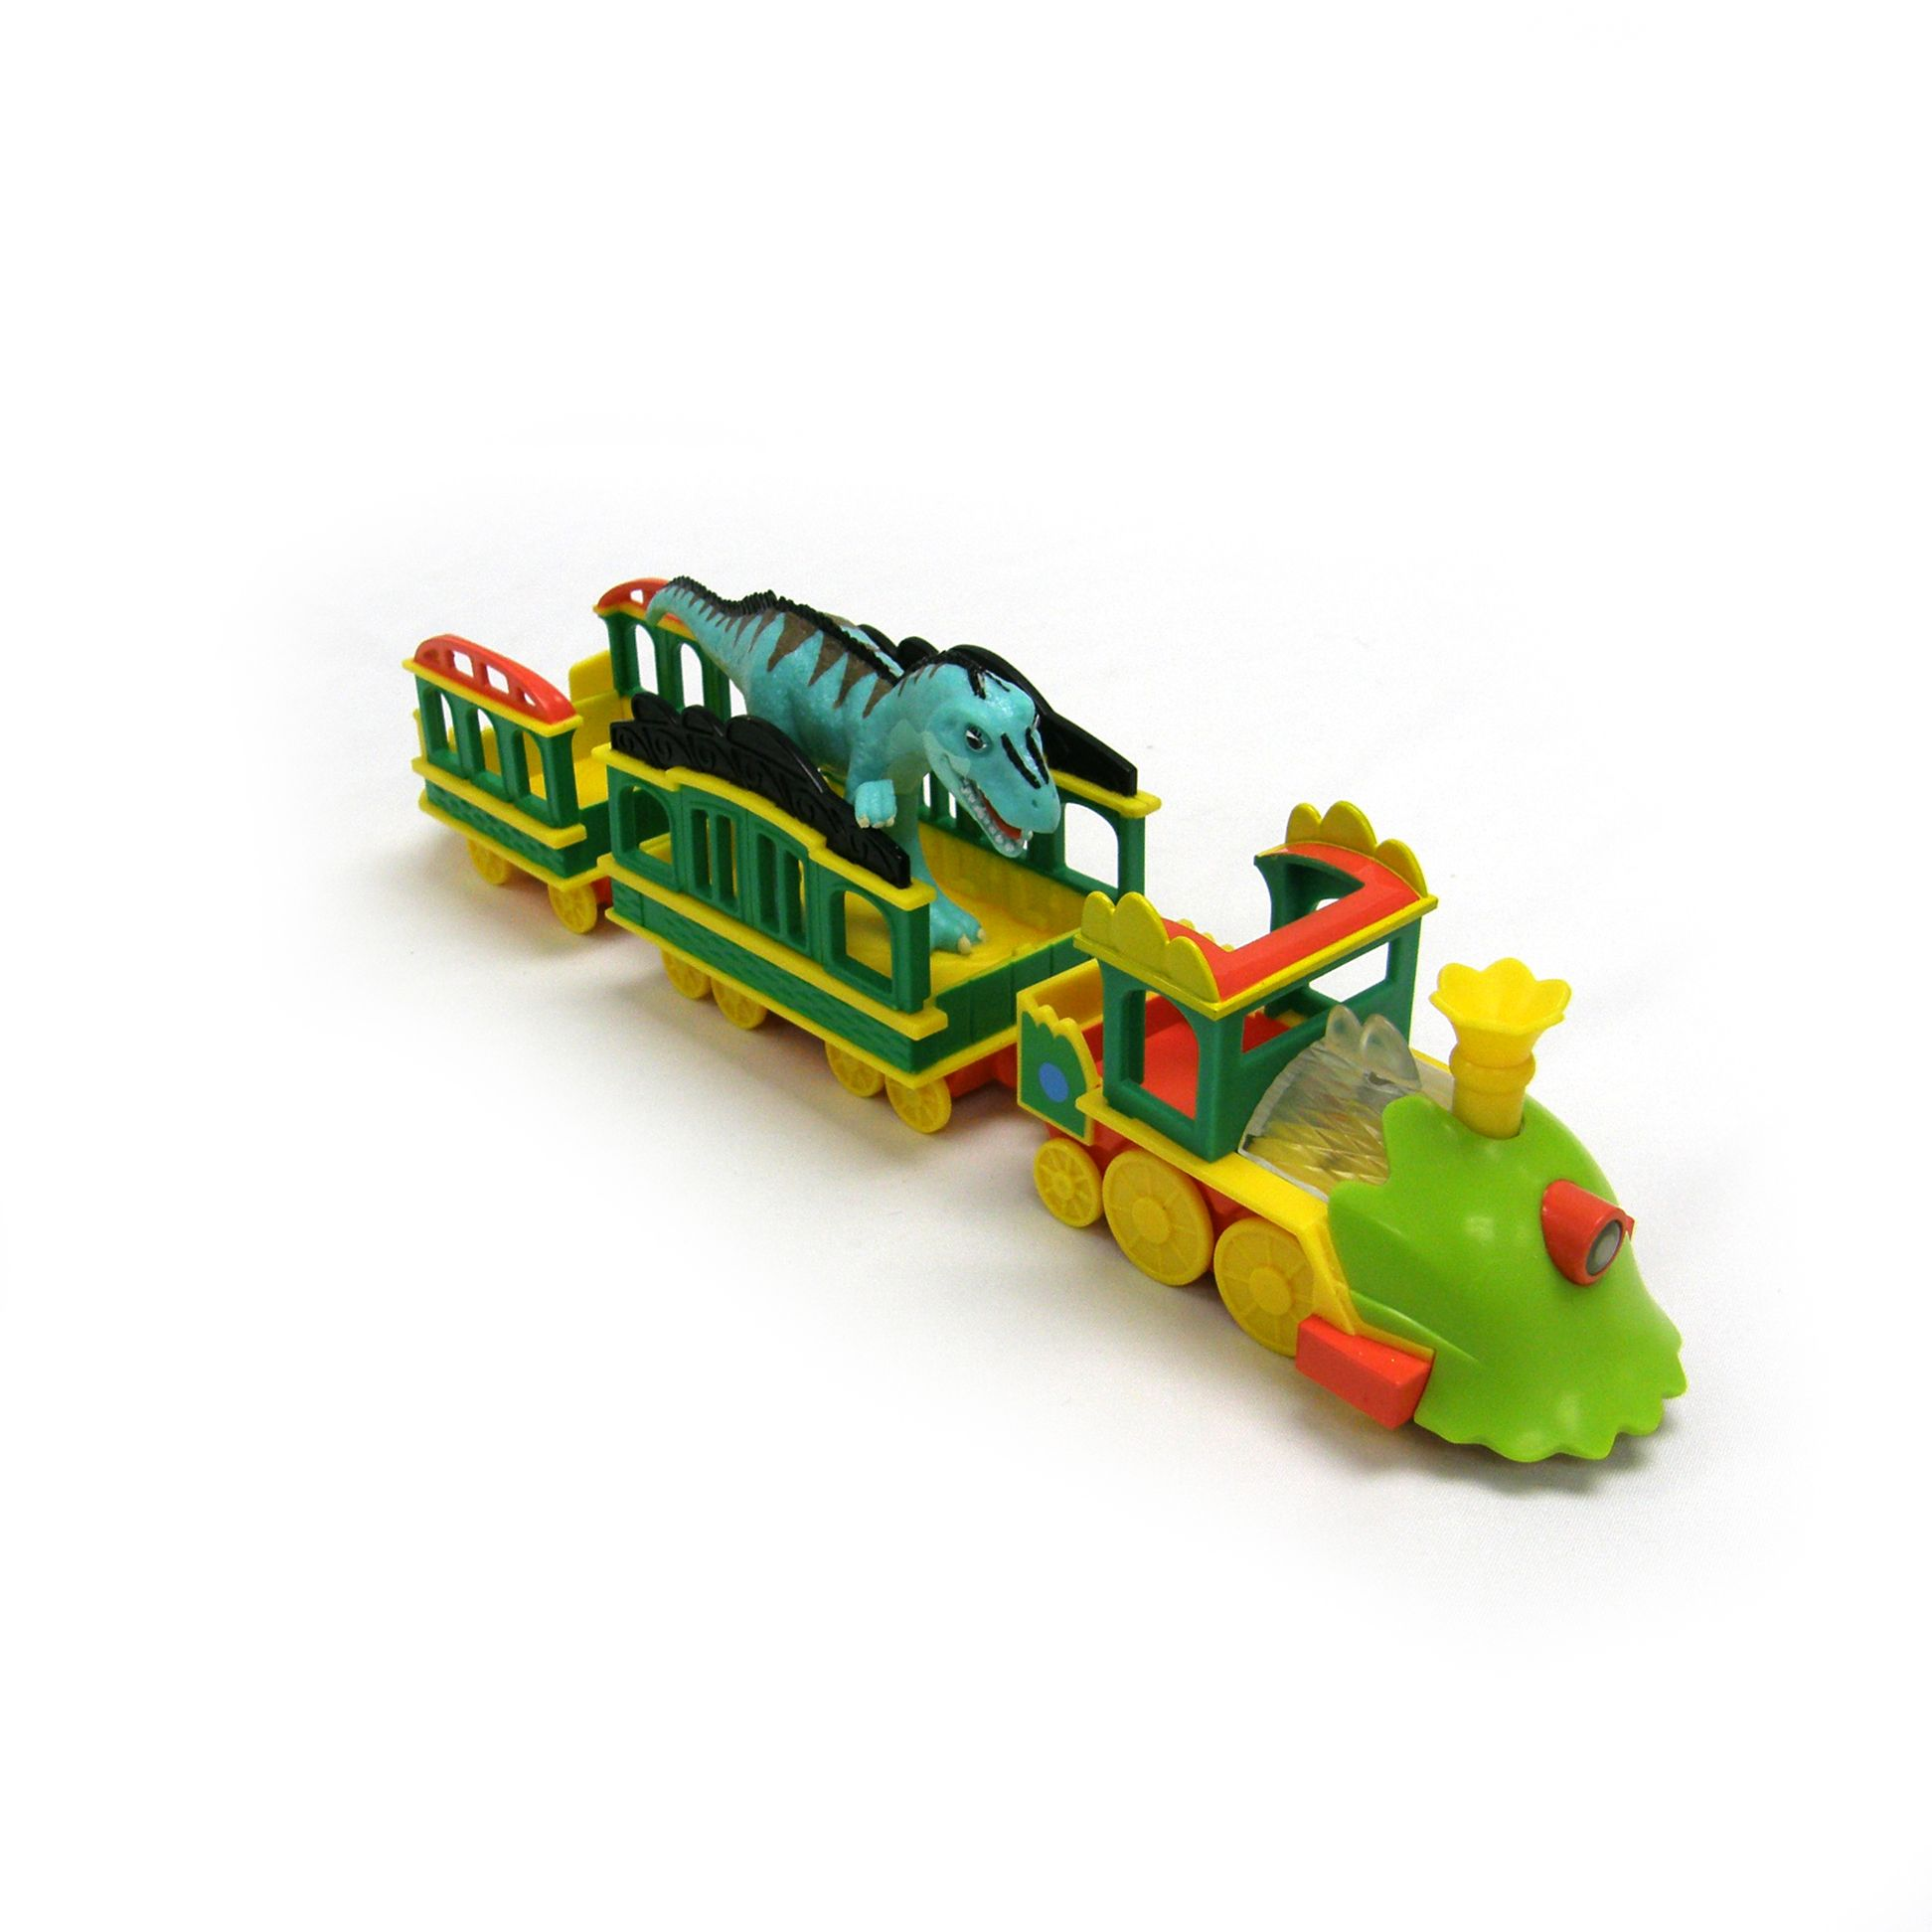 Dinosaur Train 3 Car Train w/Sound and Lights Collector Set